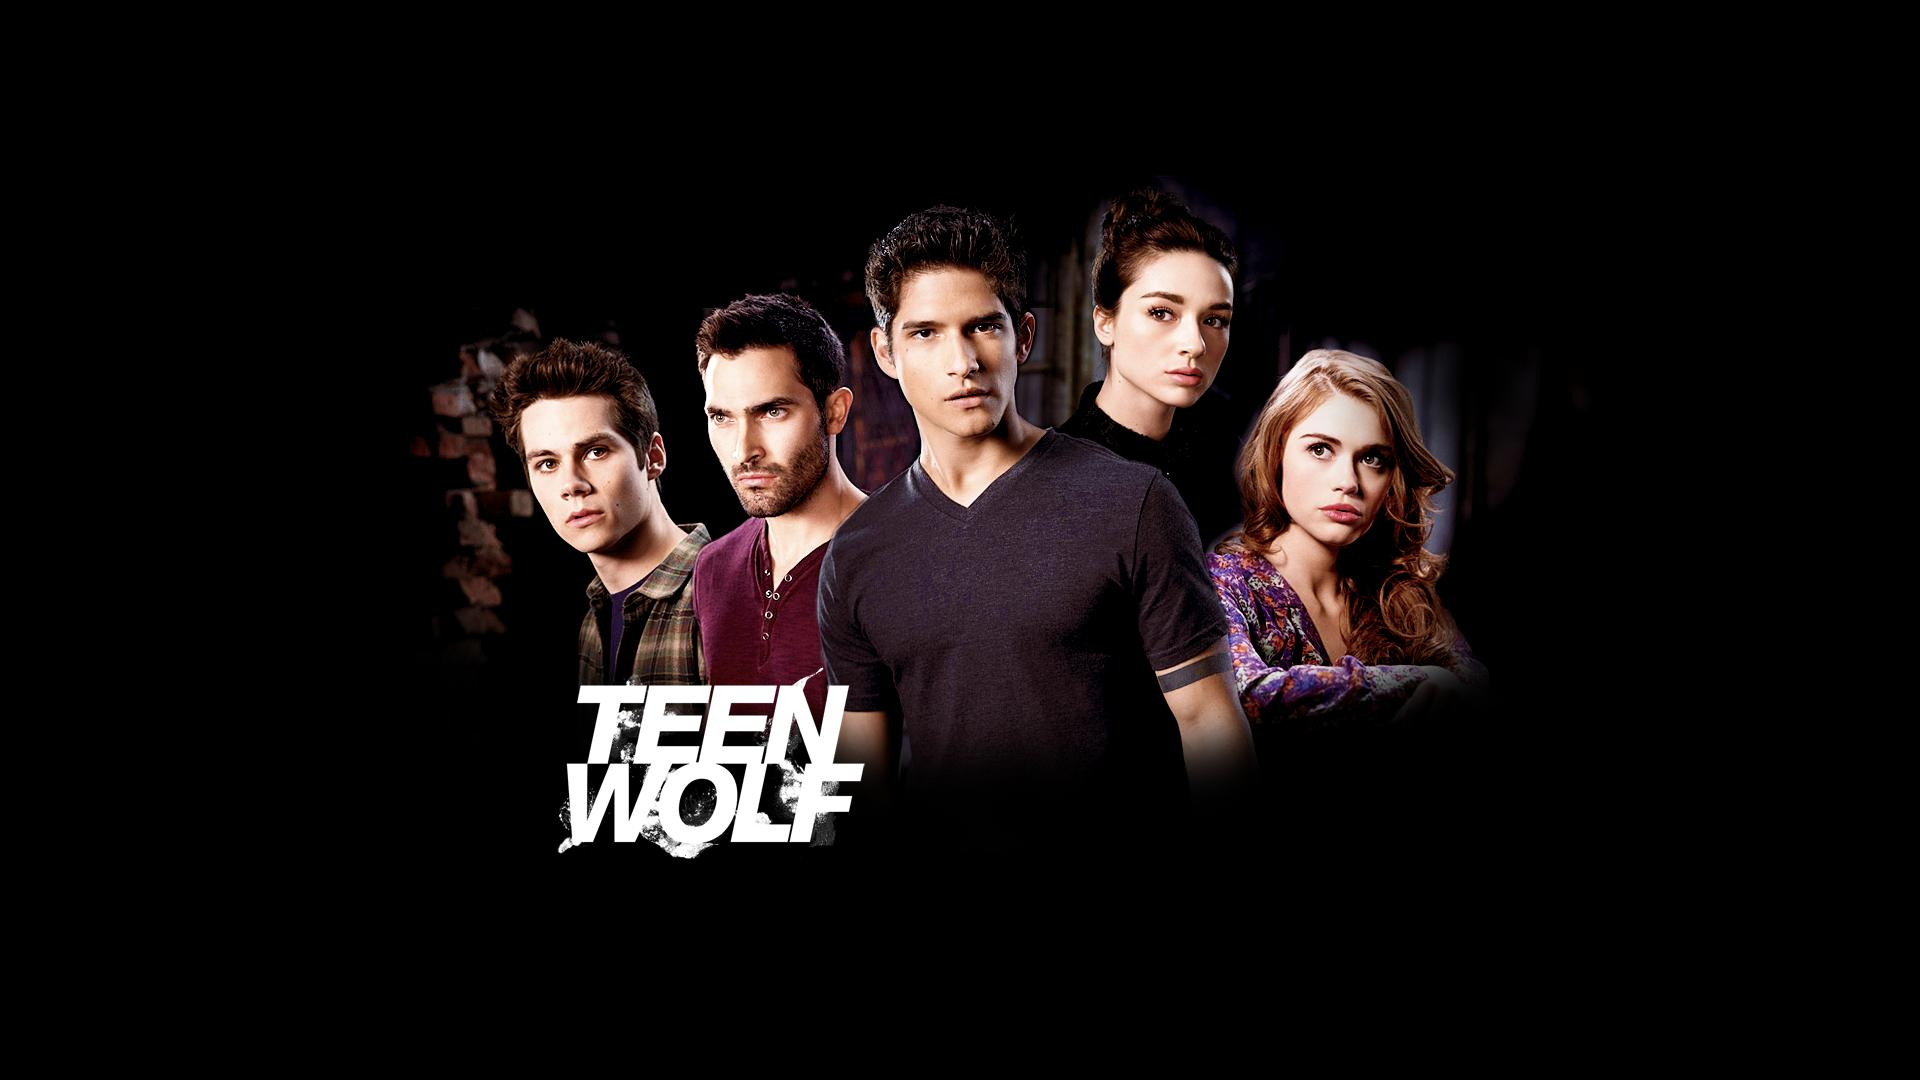 Teen Wolf Wallpapers - Wallpaper Cave